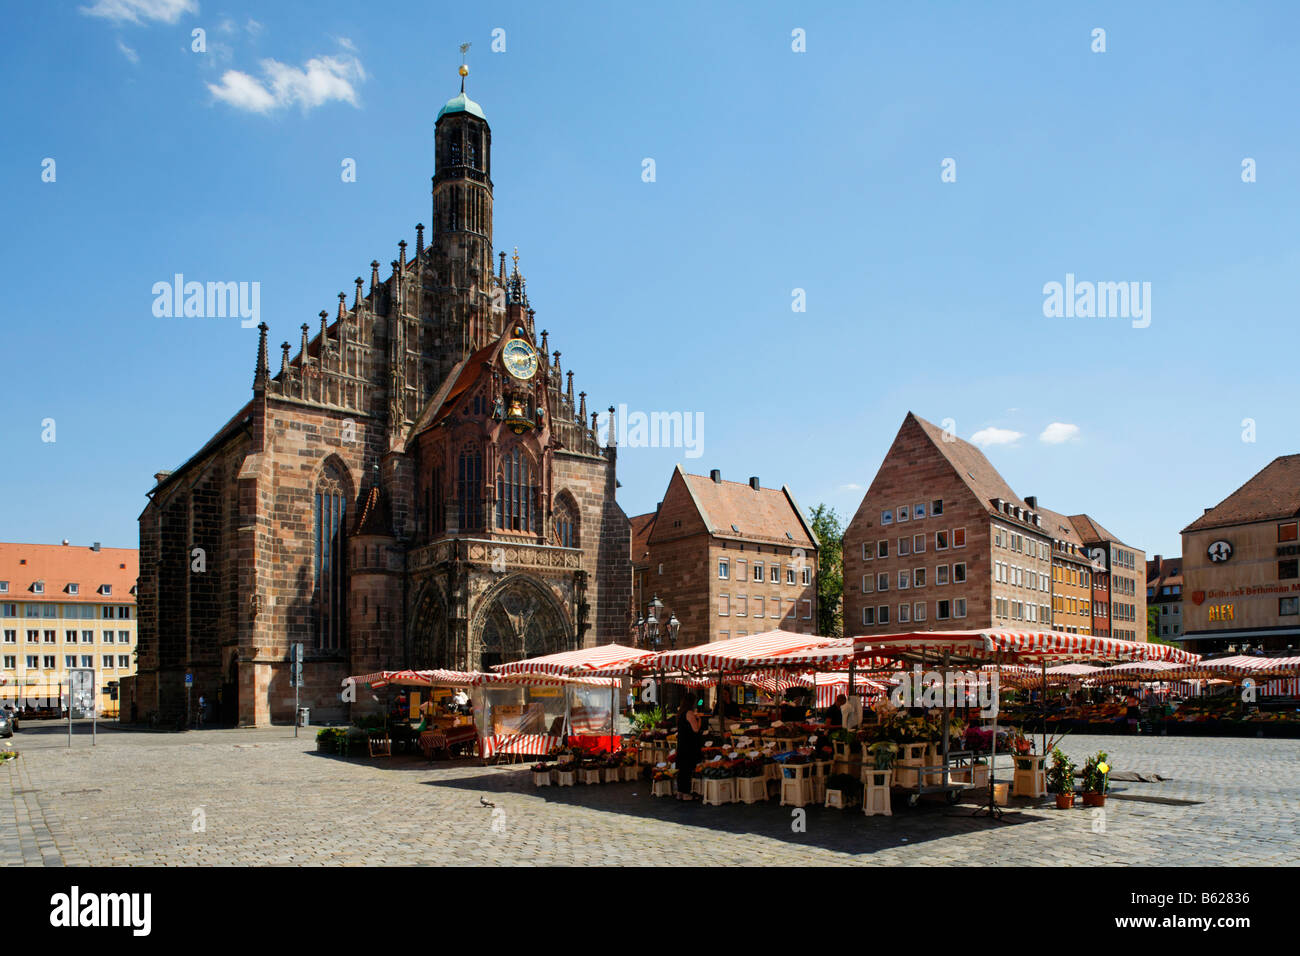 Main market, Frauenkirche Church, market, historic city centre, Nuremberg, Middle Franconia, Bavaria, Germany, Europe - Stock Image